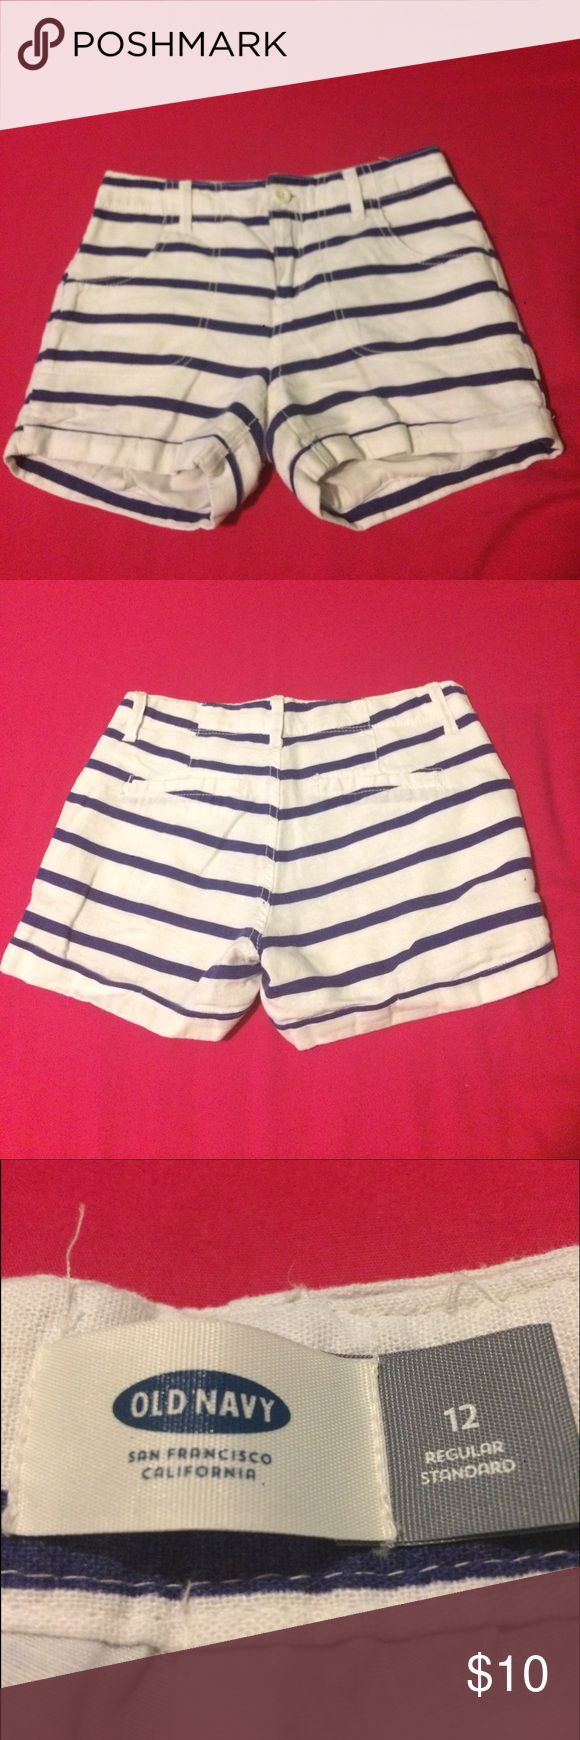 Cute summer blue and white shorts These cute summer shorts are perfect for the pool or beach. White with blue strips. They have front pockets and fake back pockets. They are a girls size 12 regular. The waist is adjustable. Old Navy Bottoms Shorts